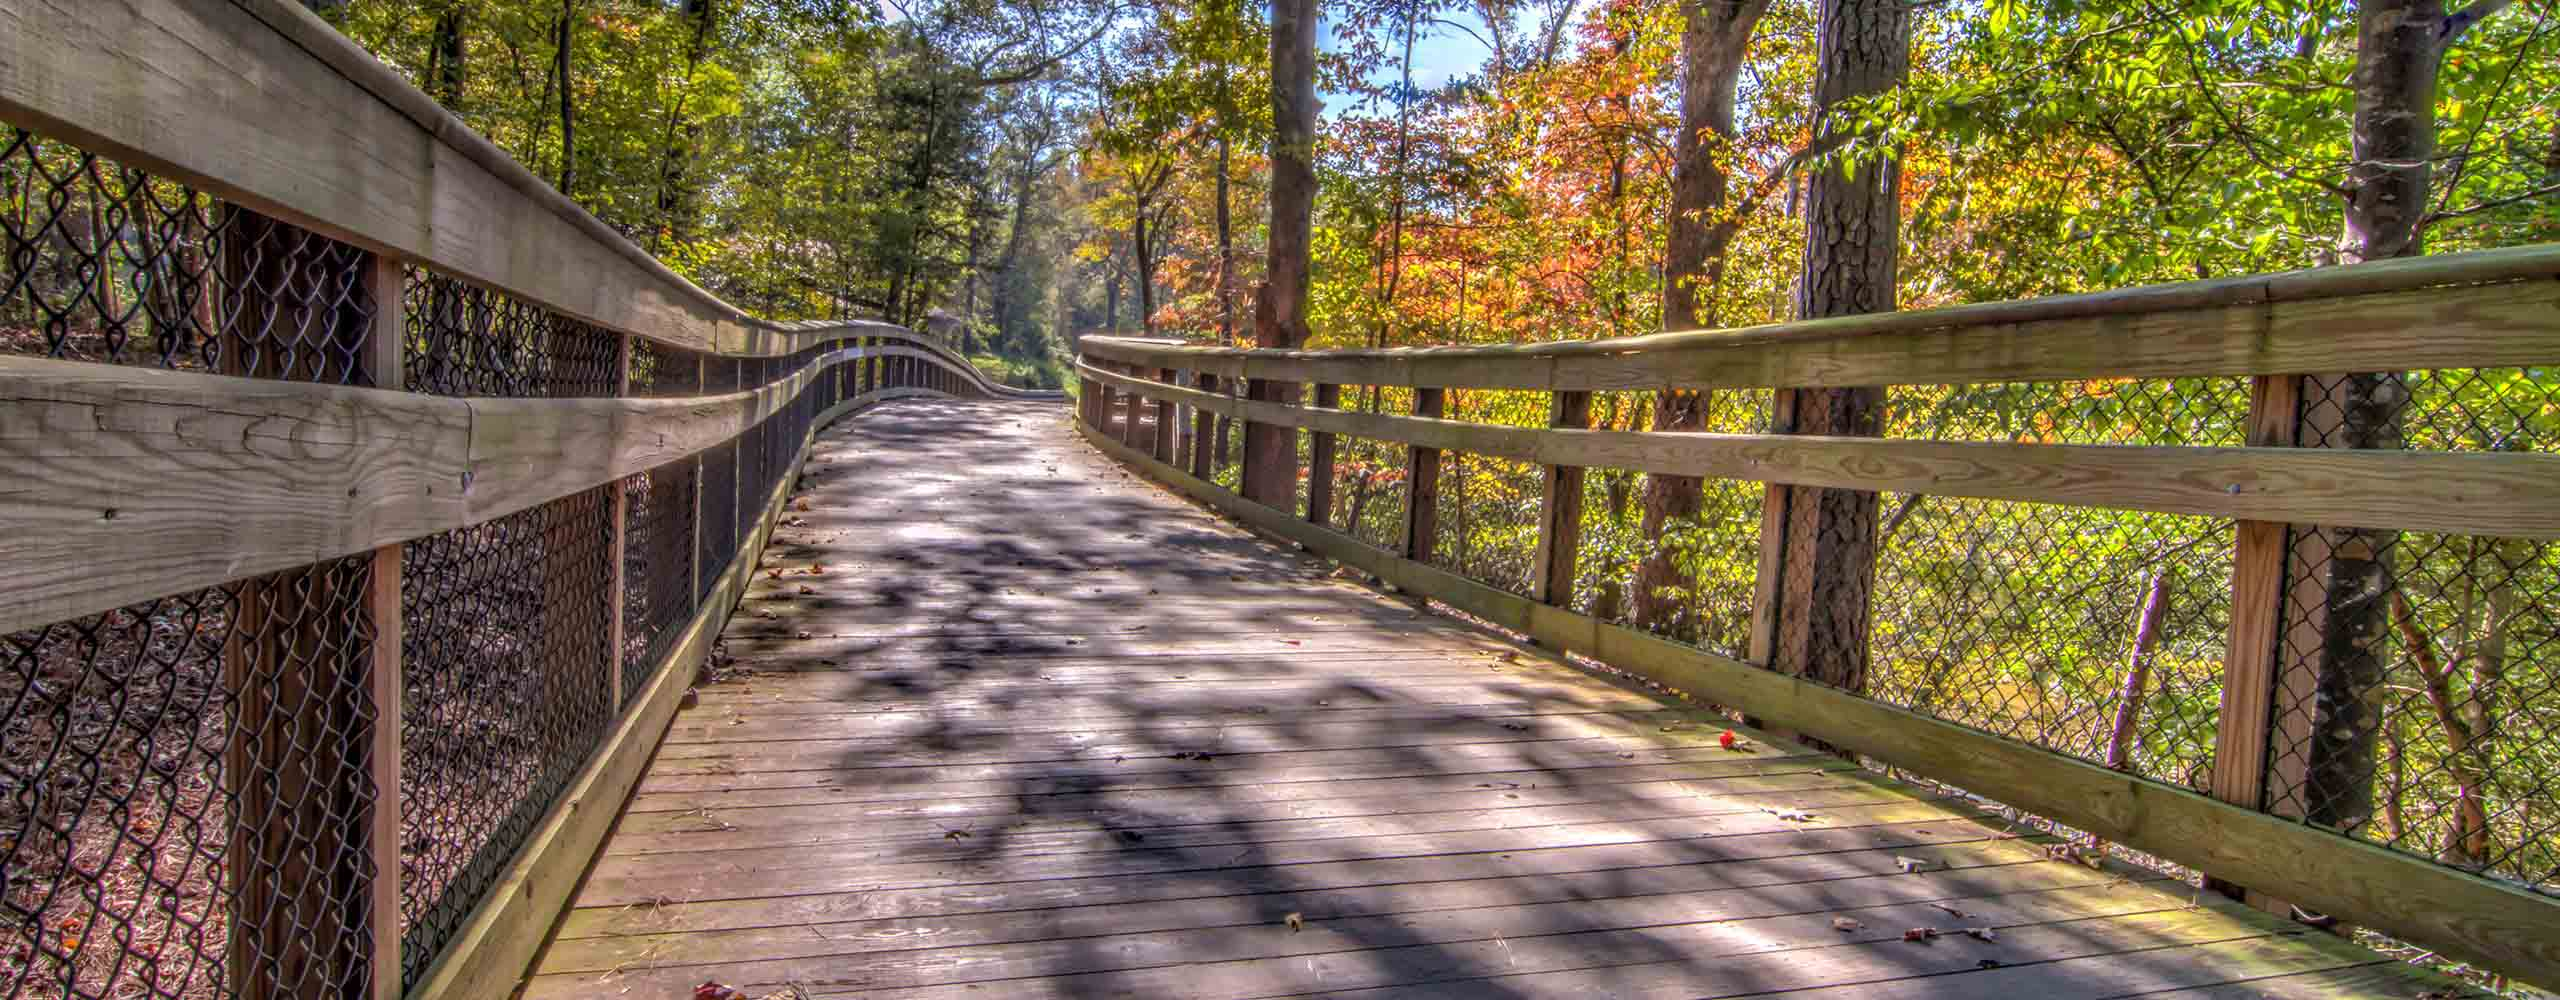 Neuse River Greenway 7